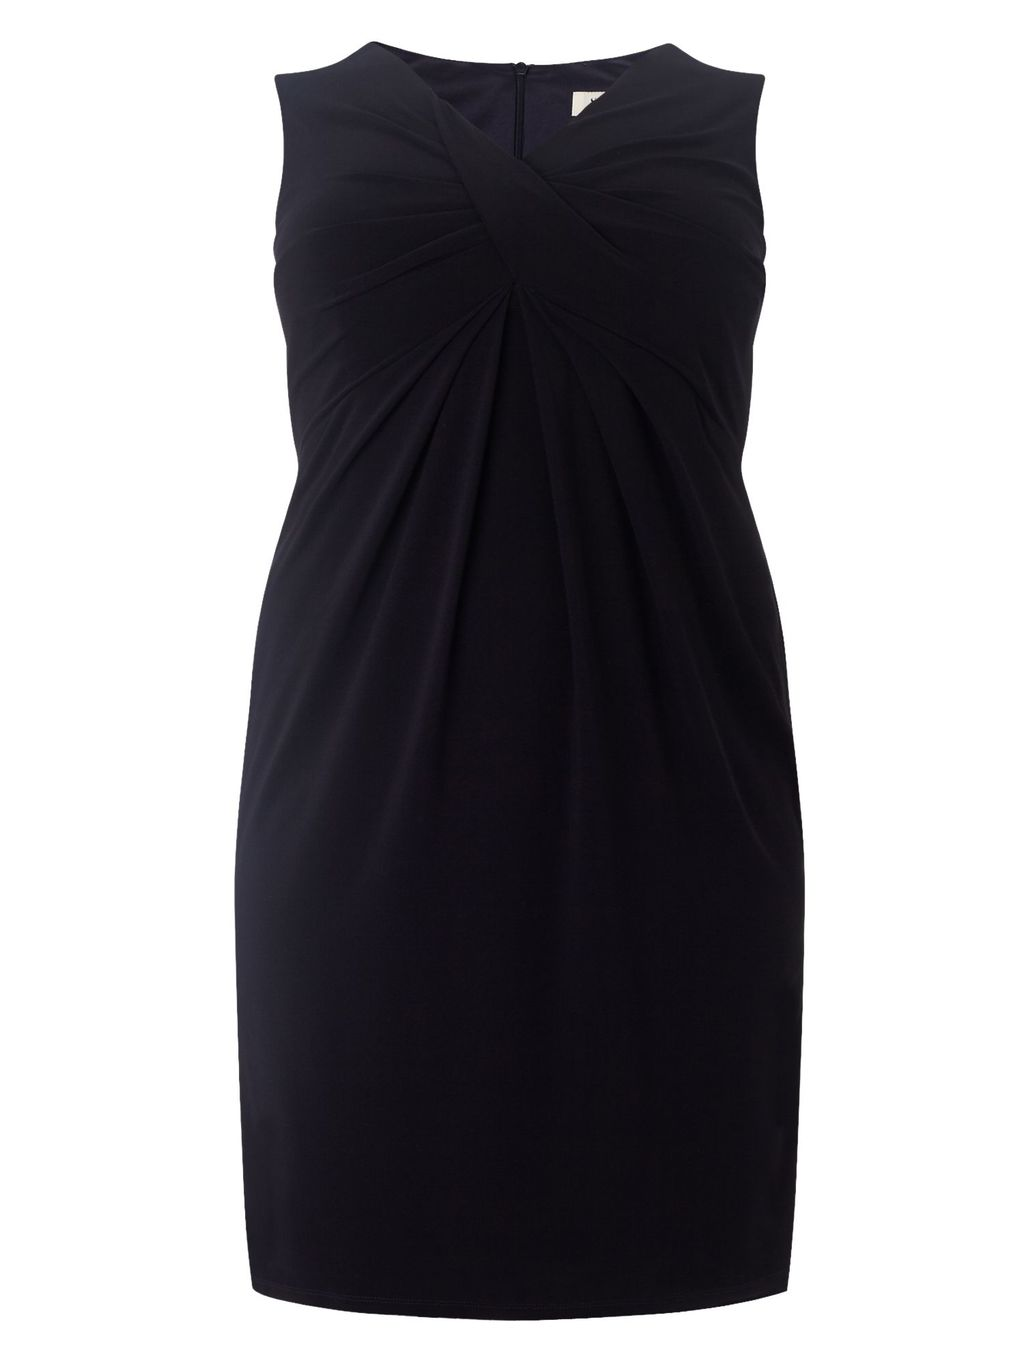 Ivy Dress, Navy - style: faux wrap/wrap; length: mid thigh; neckline: v-neck; fit: empire; pattern: plain; sleeve style: sleeveless; bust detail: ruching/gathering/draping/layers/pintuck pleats at bust; predominant colour: navy; fibres: polyester/polyamide - stretch; occasions: occasion; sleeve length: sleeveless; pattern type: fabric; texture group: jersey - stretchy/drapey; season: s/s 2016; wardrobe: event